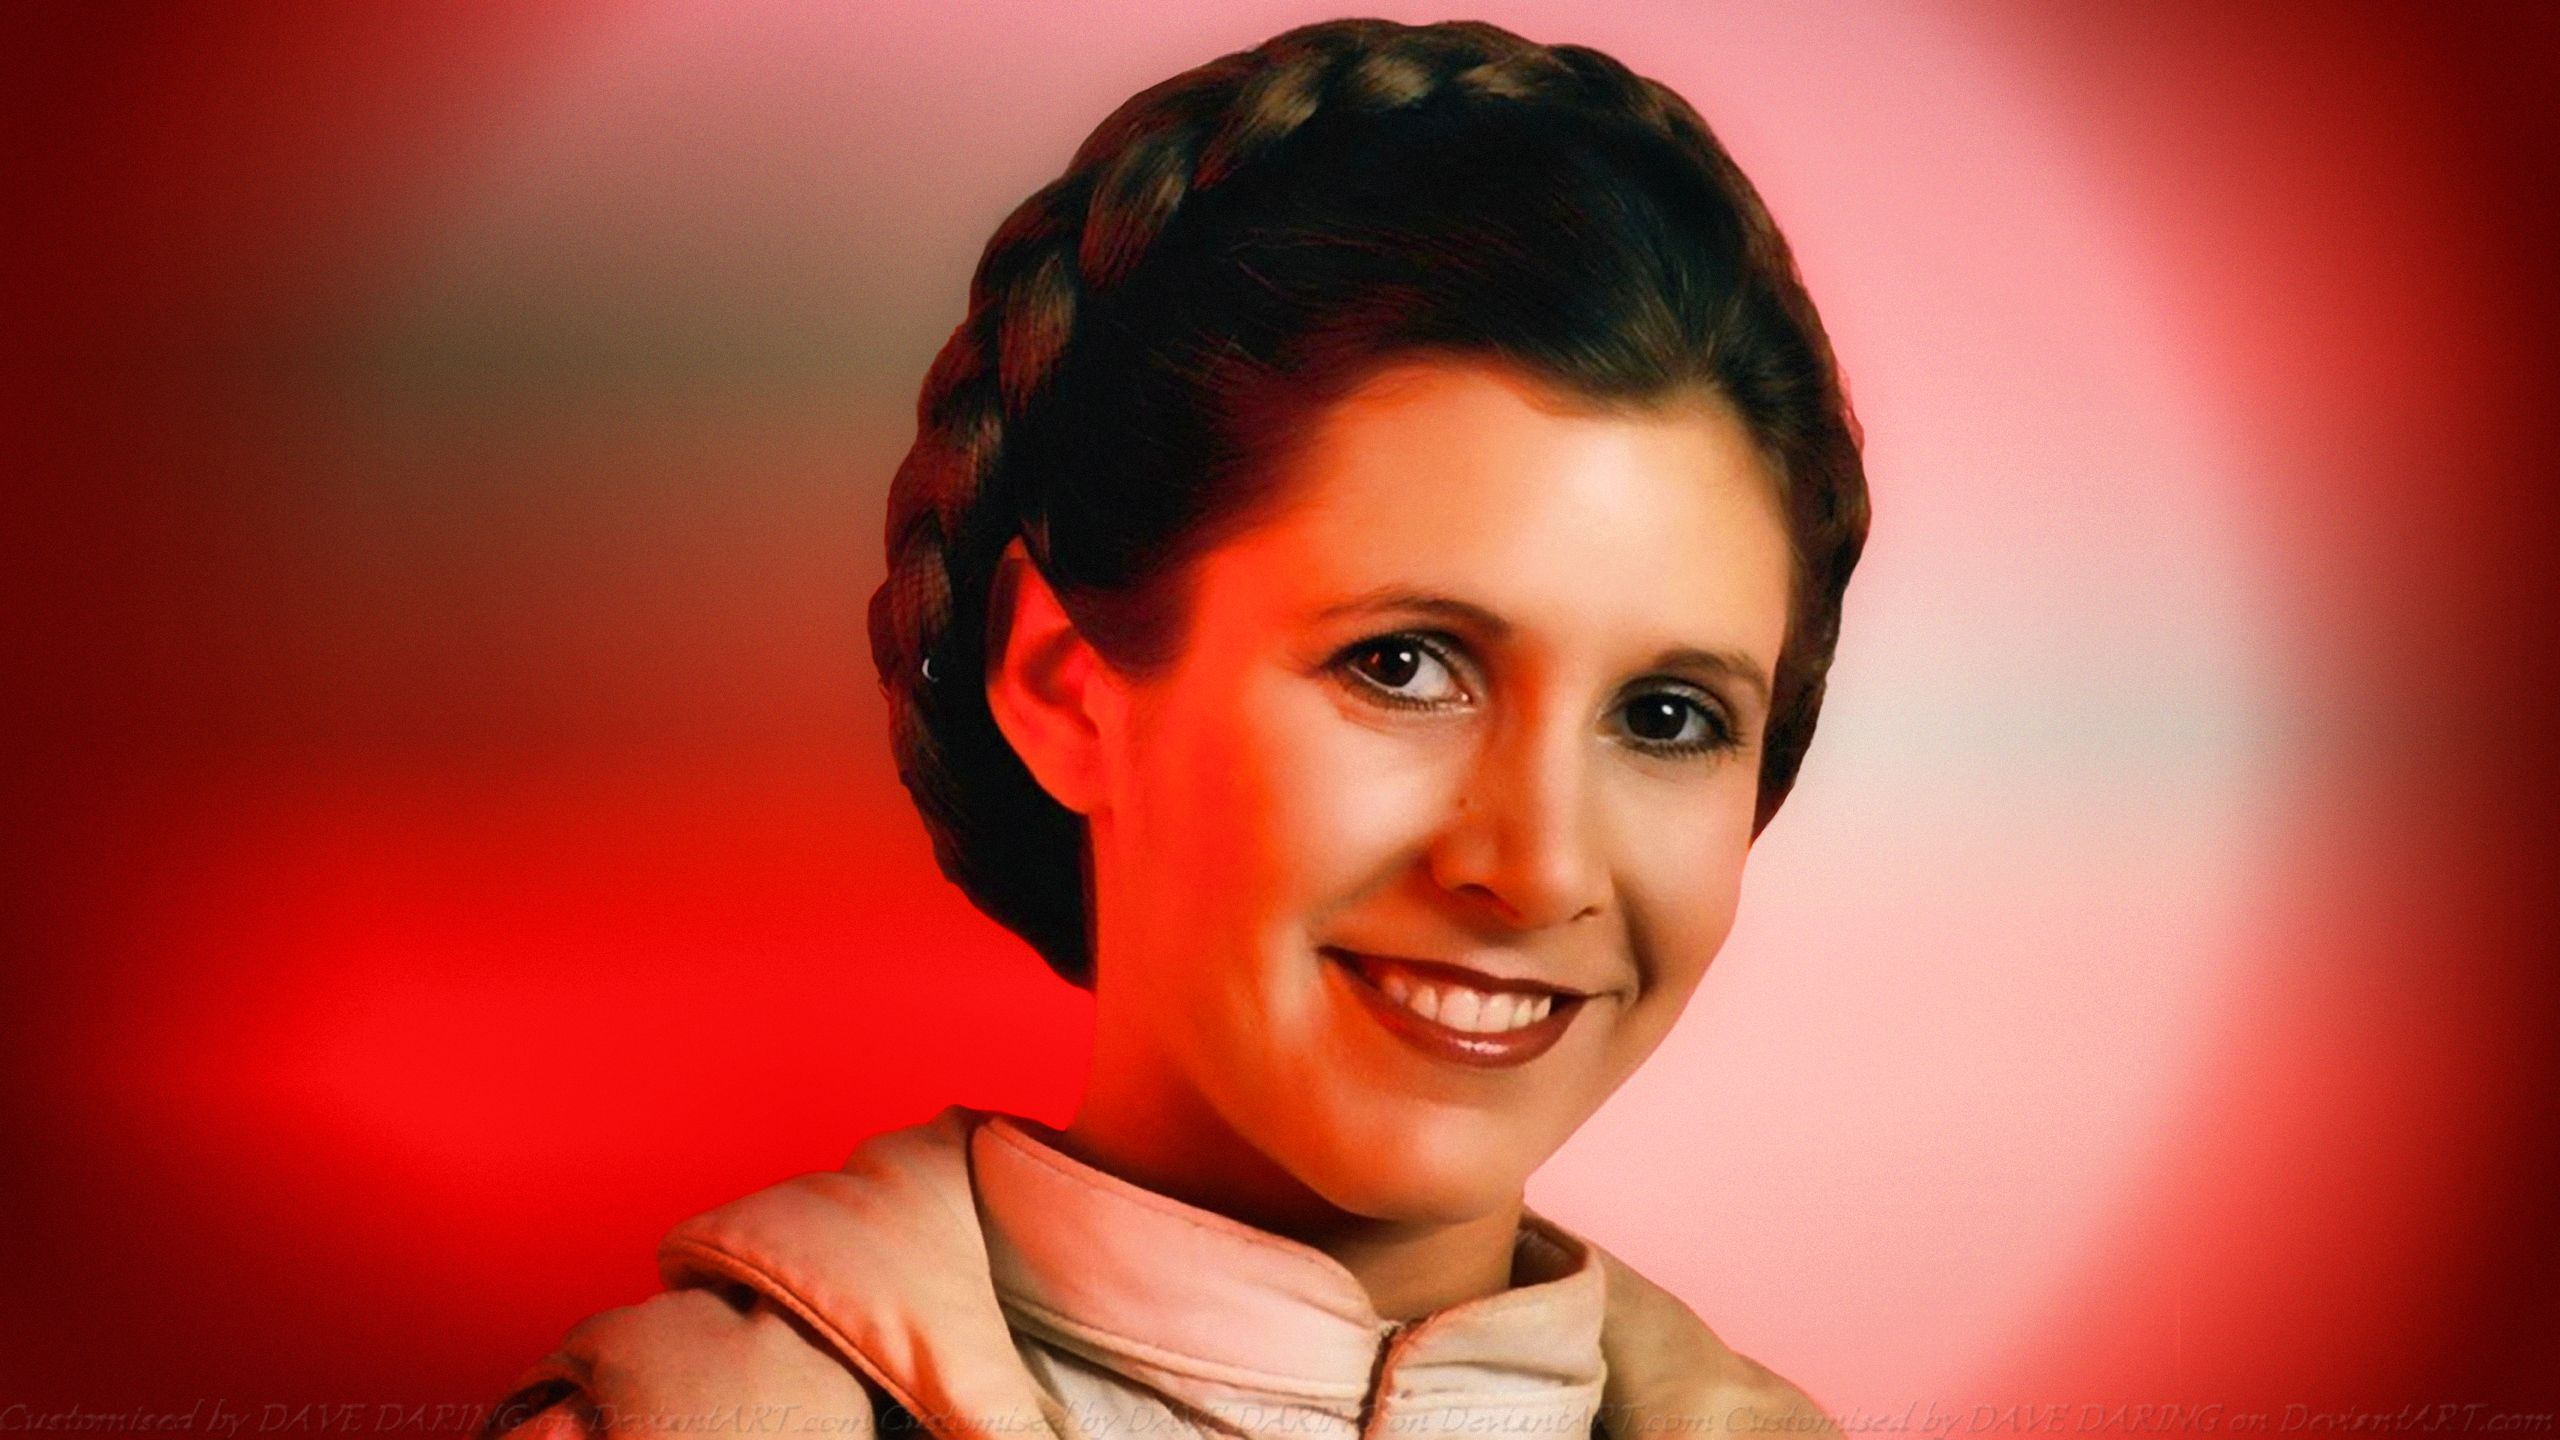 Carrie Fisher Leia Organa Episode 5 2560x1440 Download Hd Wallpaper Wallpapertip